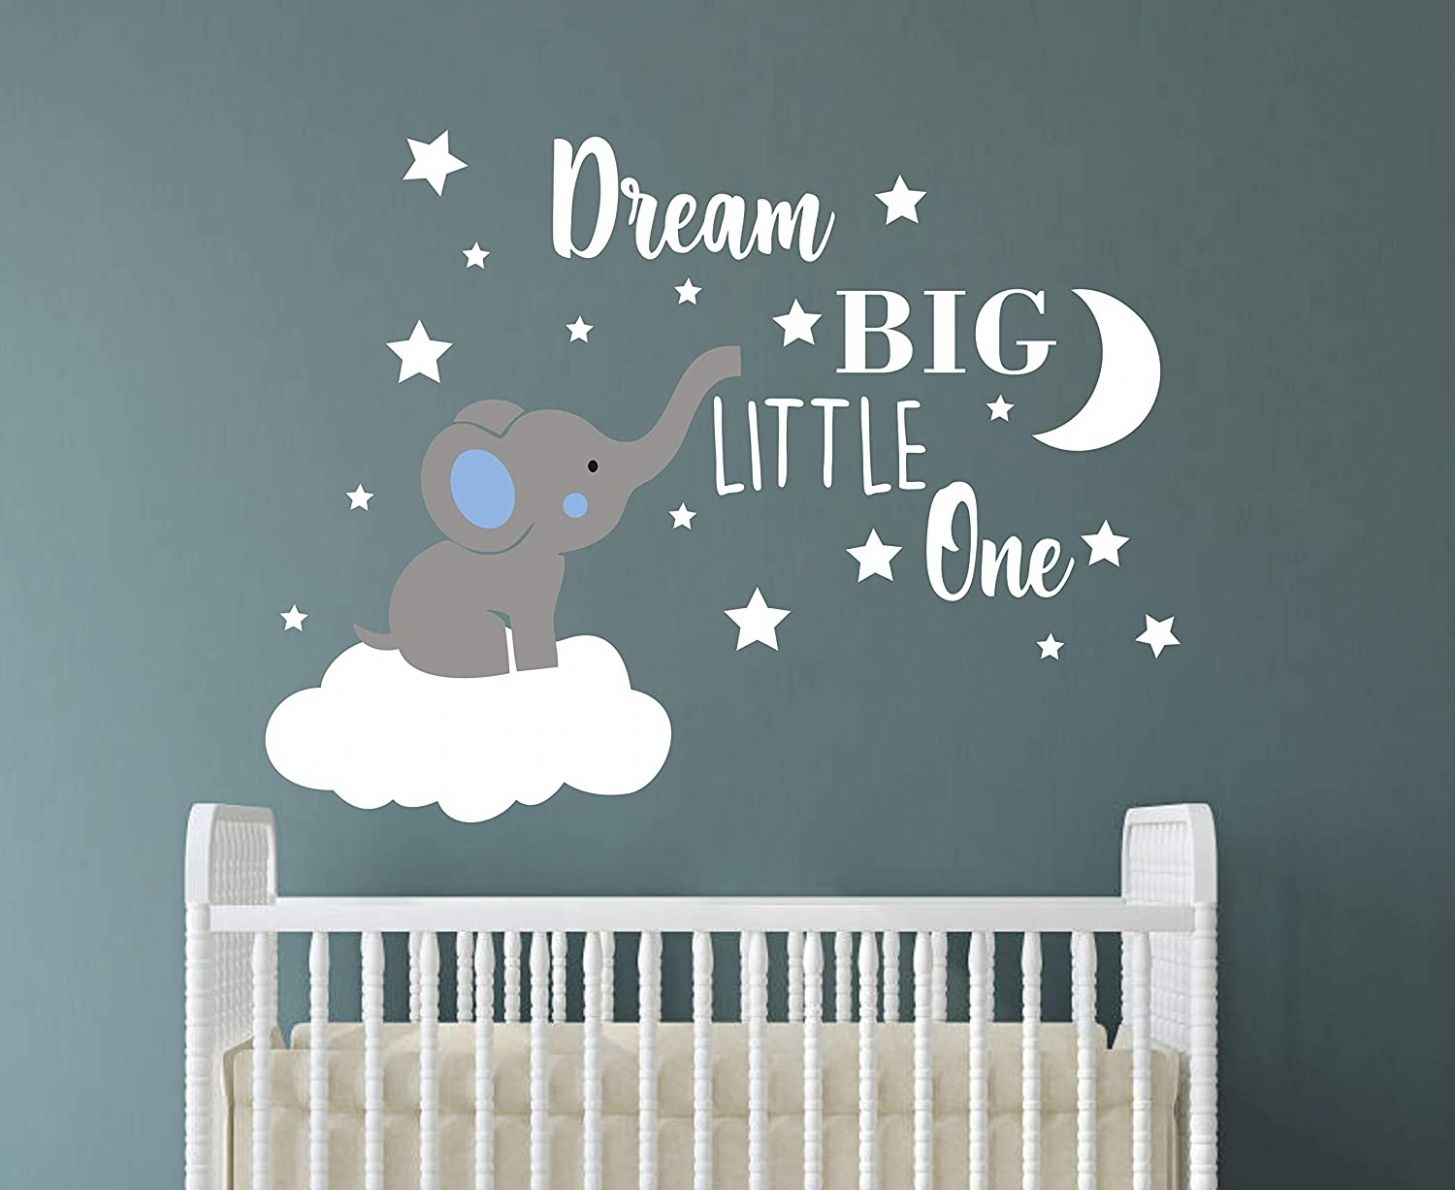 Dream Big Little One Elephant Wall Decal, Quote Wall Stickers, Baby Room  Wall Decor, Vinyl Wall Decals for Children Baby Kids Boy Girl Bedroom  Nursery ..